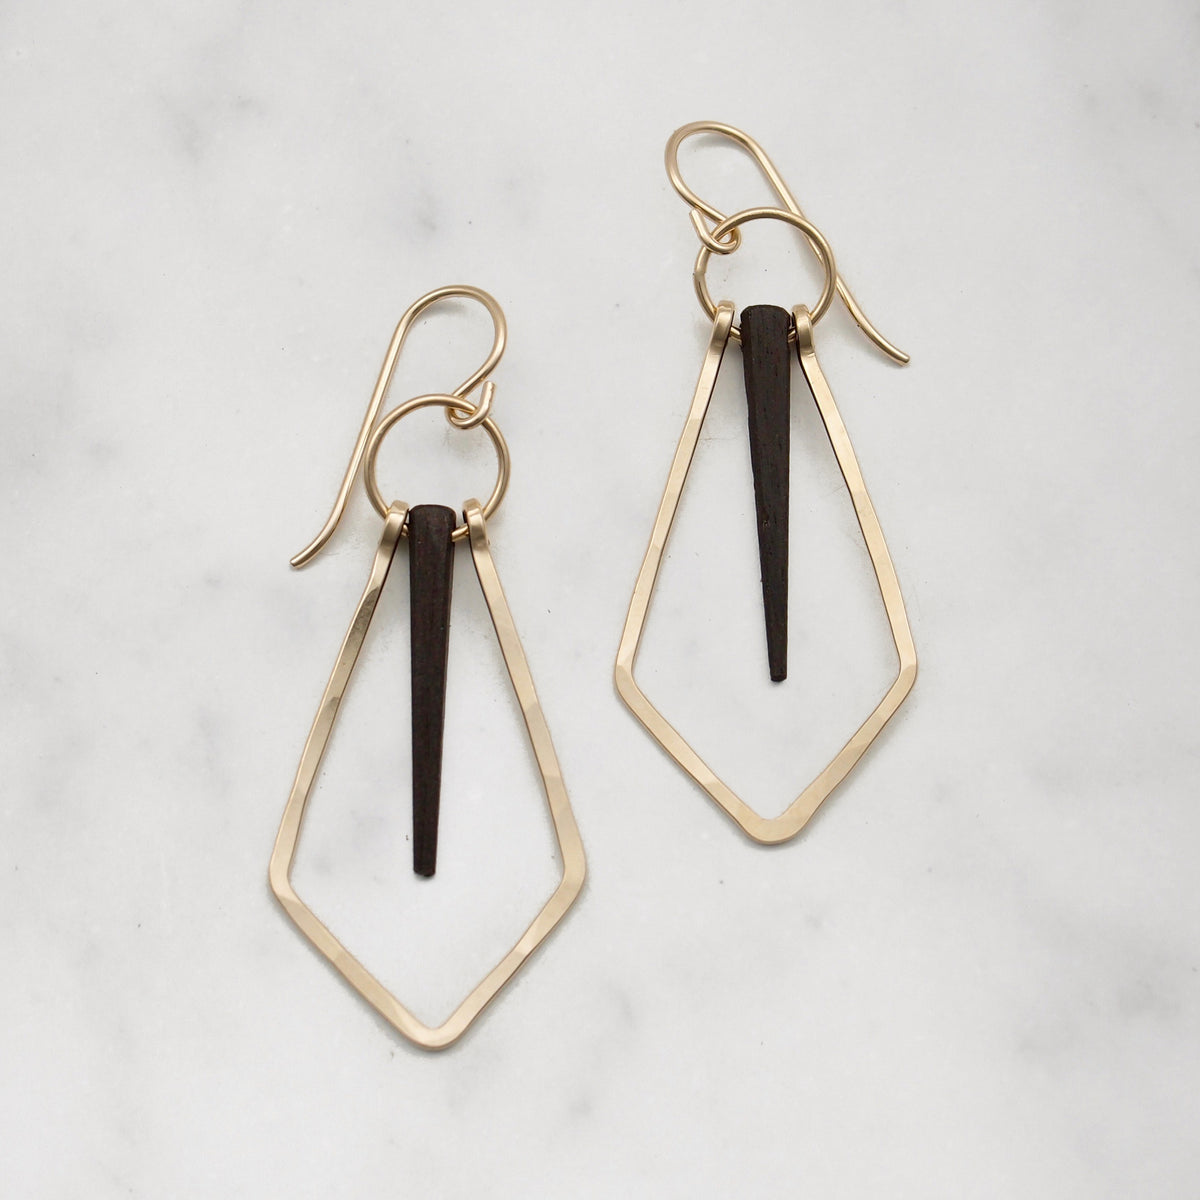 Tai Earring - 14k Gold Fill